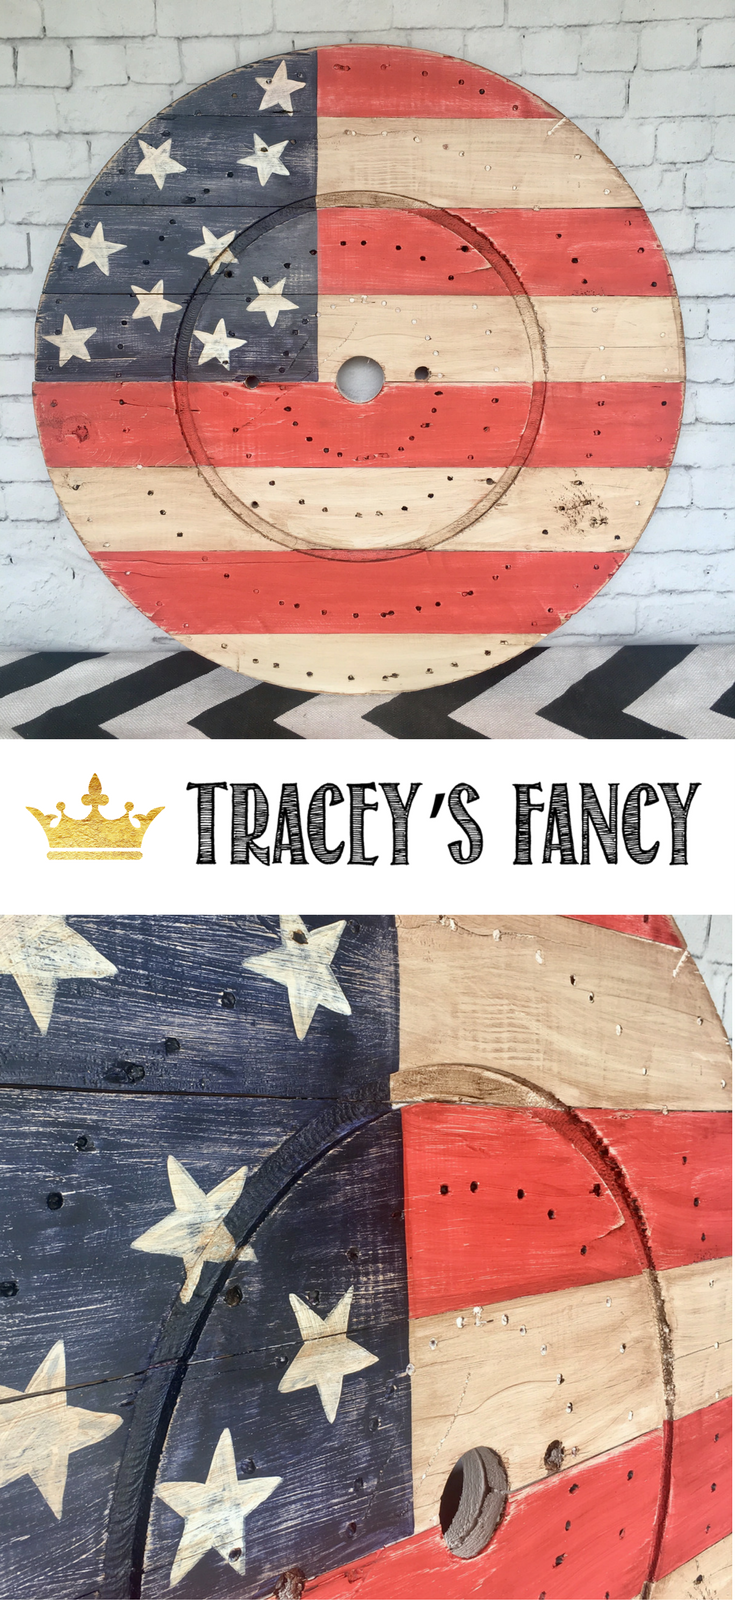 July 4 Decor Ideas by Tracey's Fancy- Patriotic Decor - Upcycled Projects. Flag Art from a repurposed cable spool | Stars and Stripes Flag Art